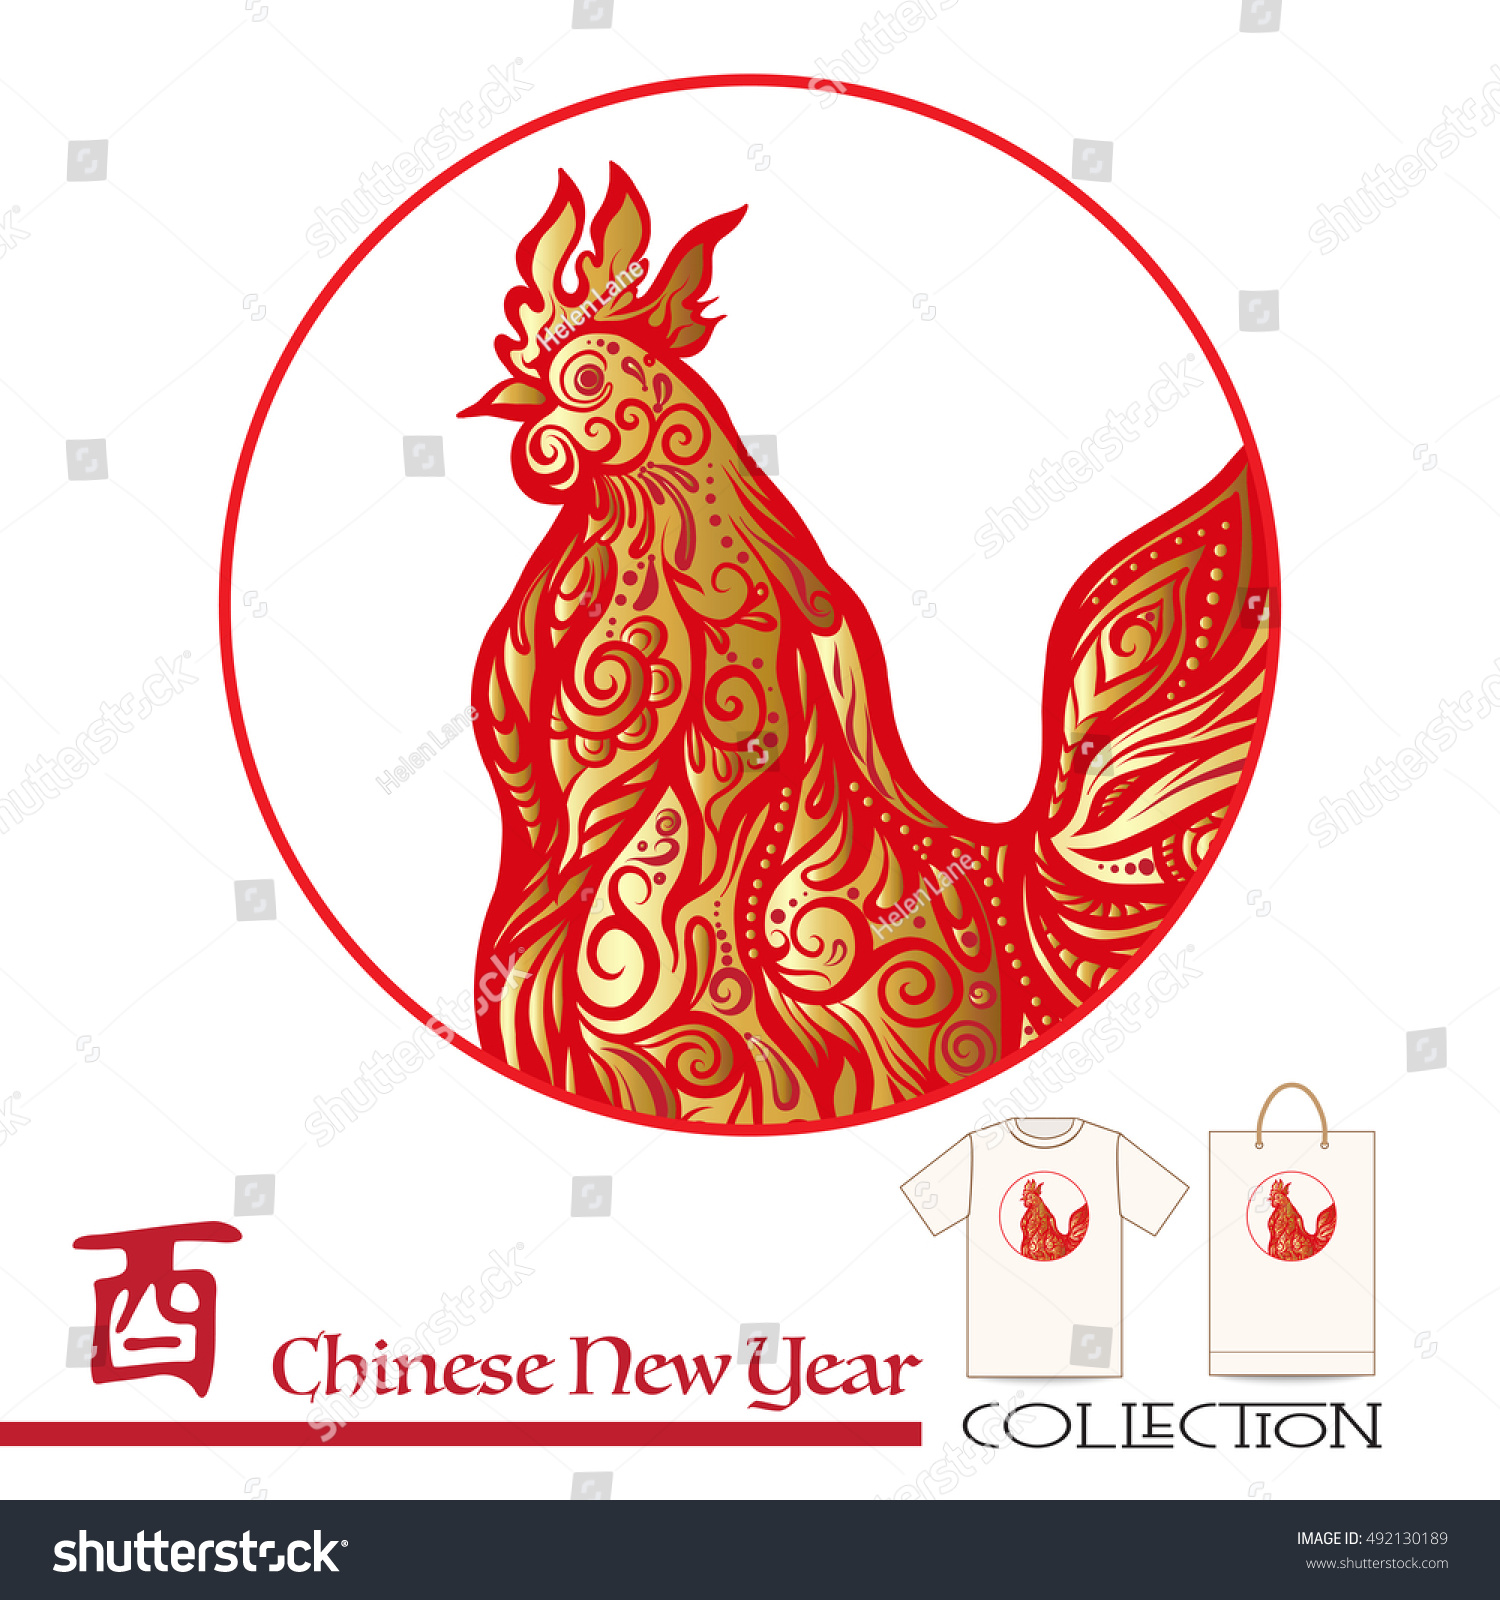 Decorative Rooster Chinese New Year Symbol Stock Vector ...